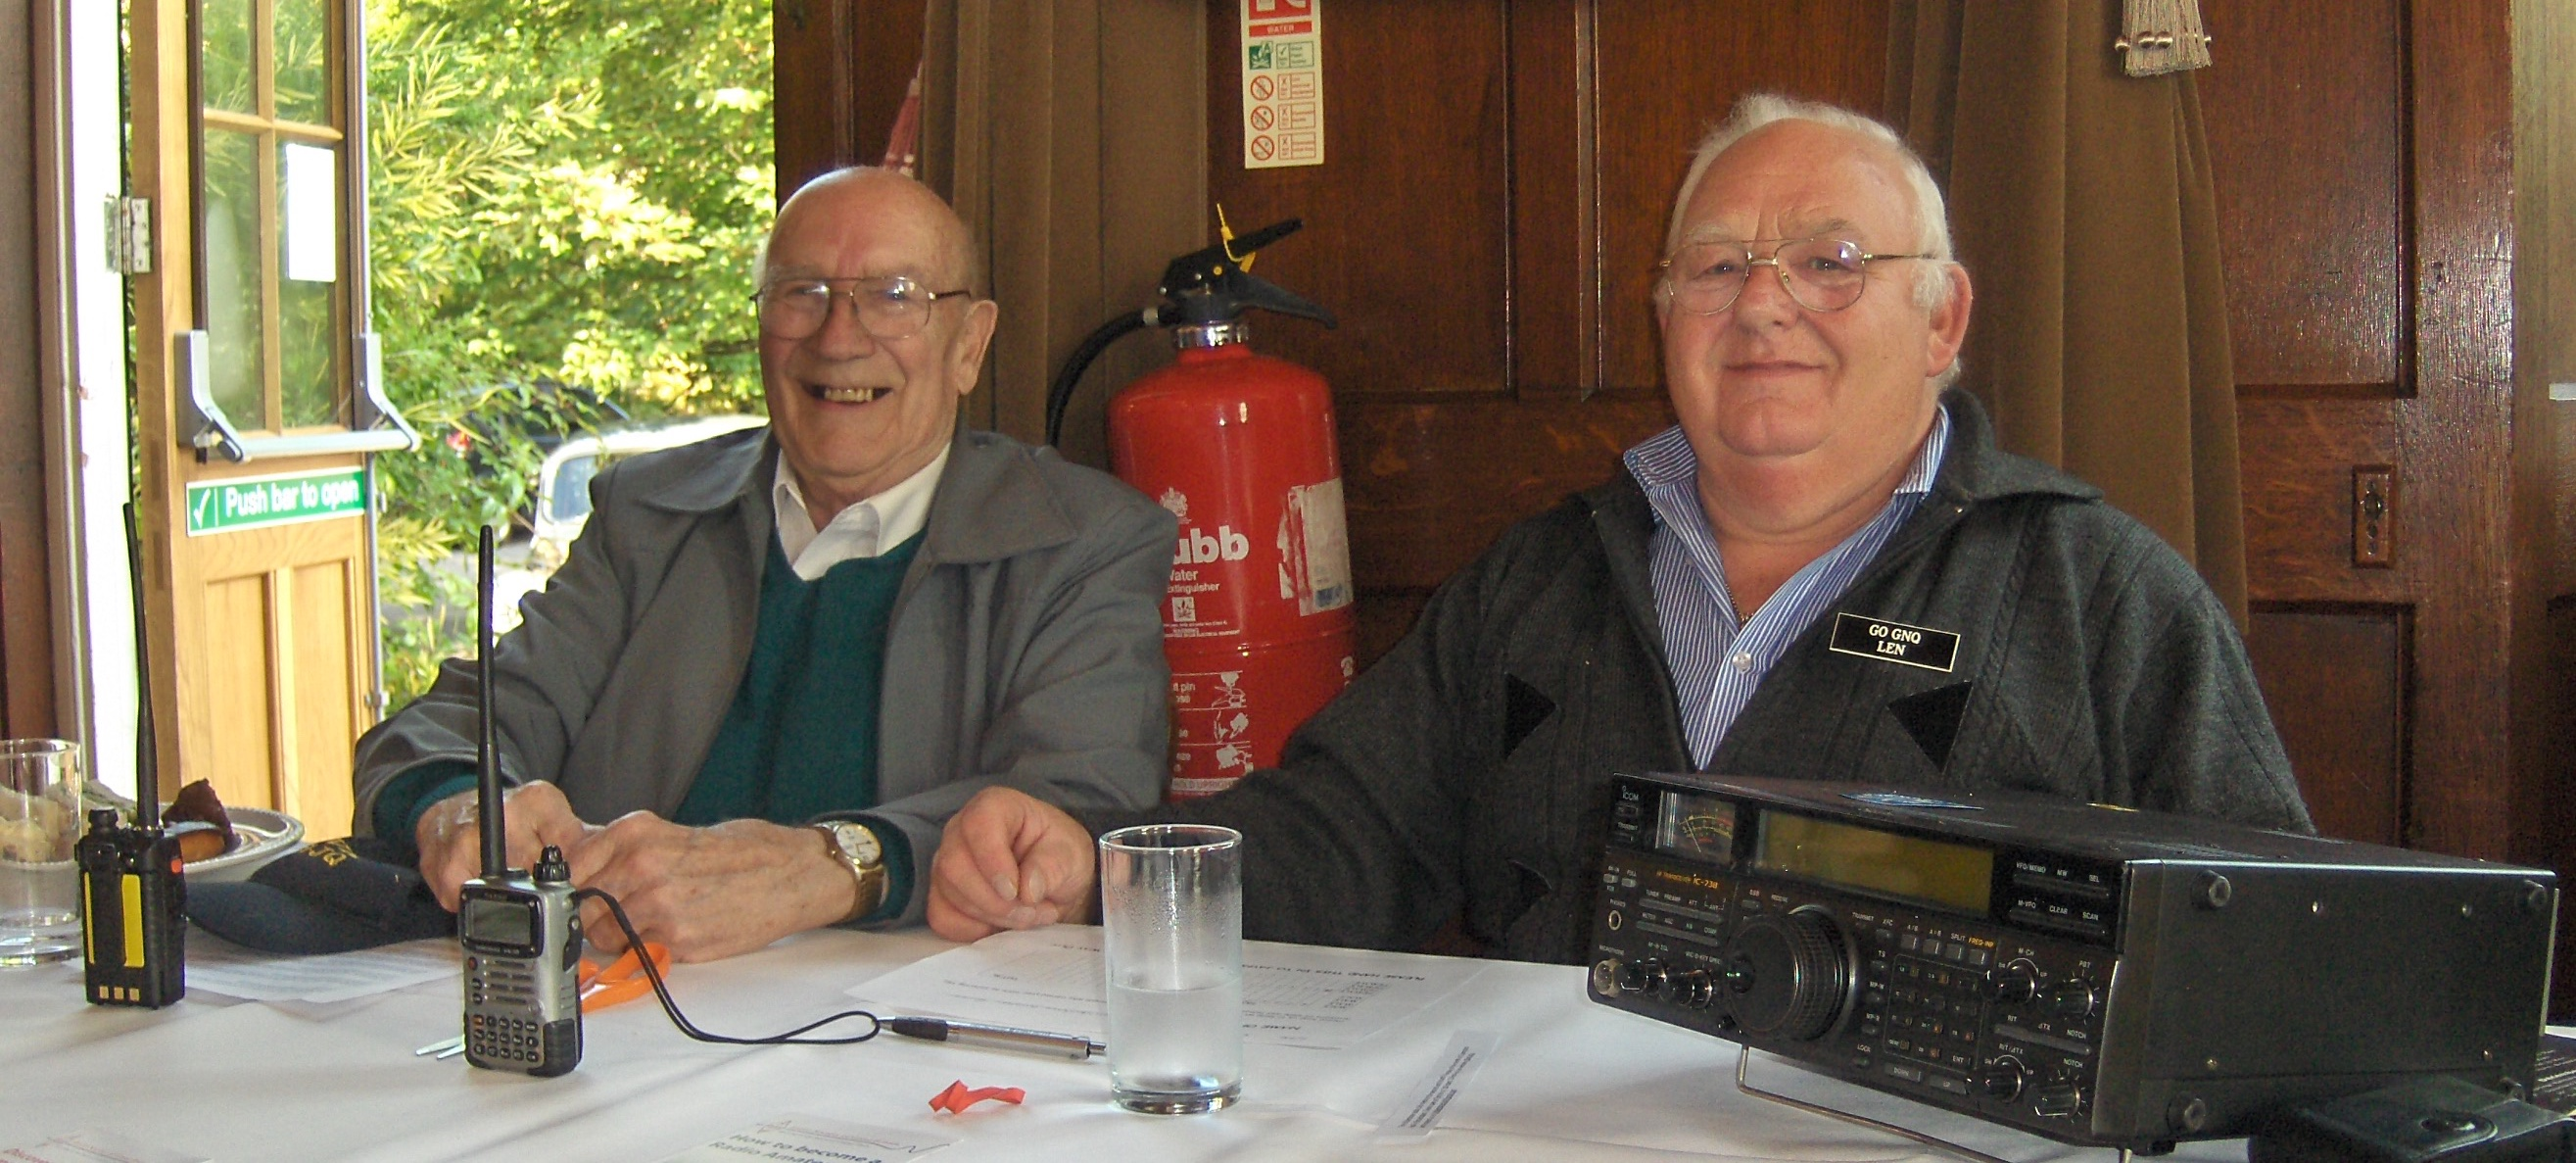 """ David and Len selling amateur radio"